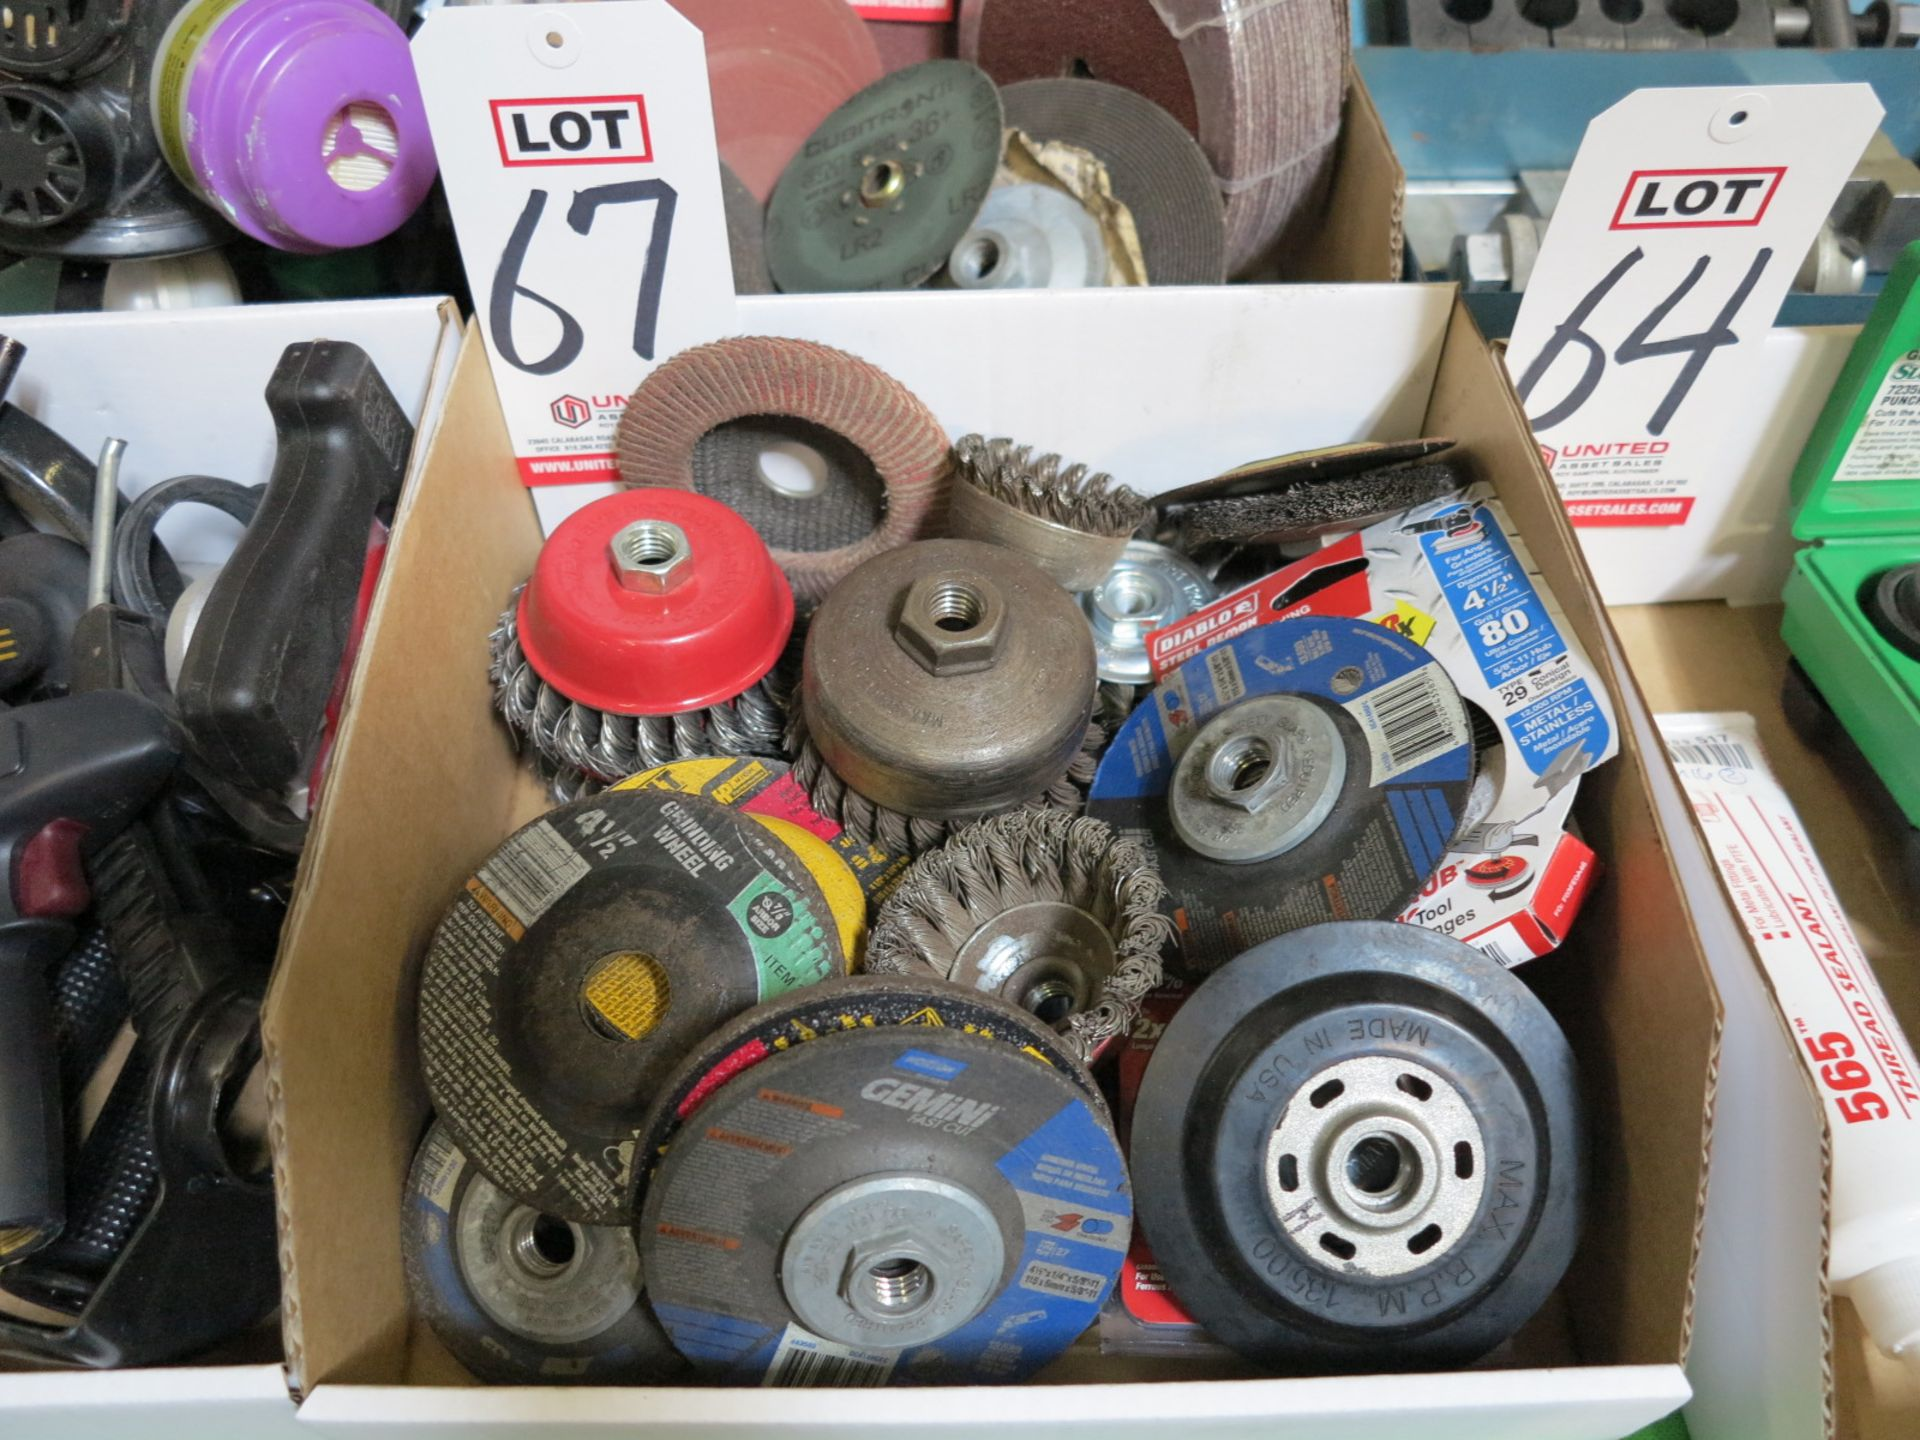 Lot 67 - LOT - ANGLE GRINDER GRINDING WHEELS AND CUP BRUSH WIRE WHEELS